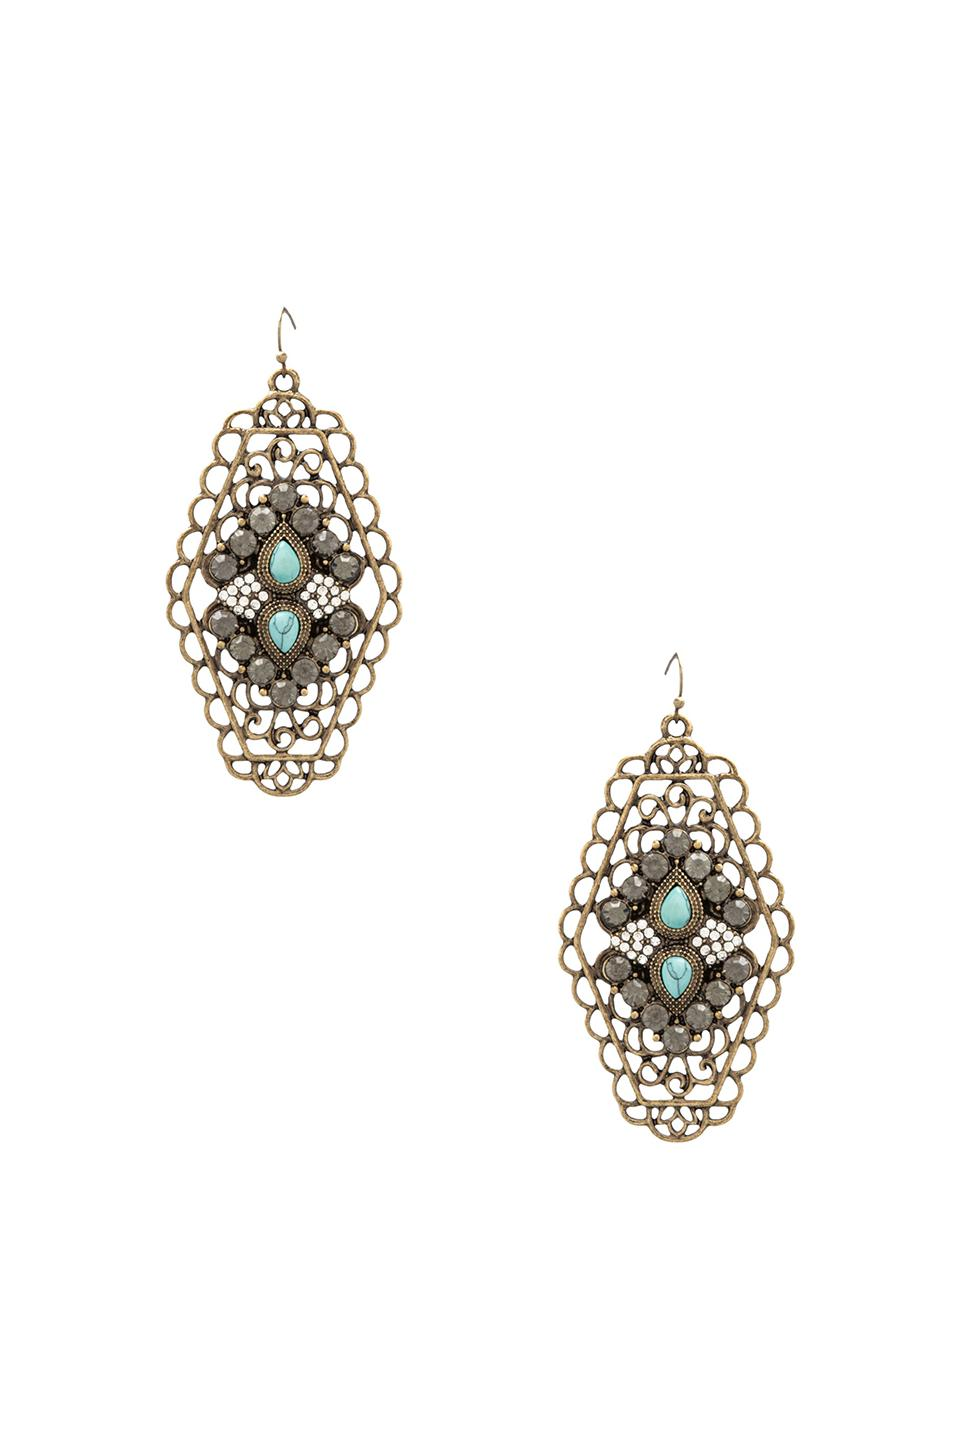 Samantha Wills Shade Of Day Earrings in Turquoise